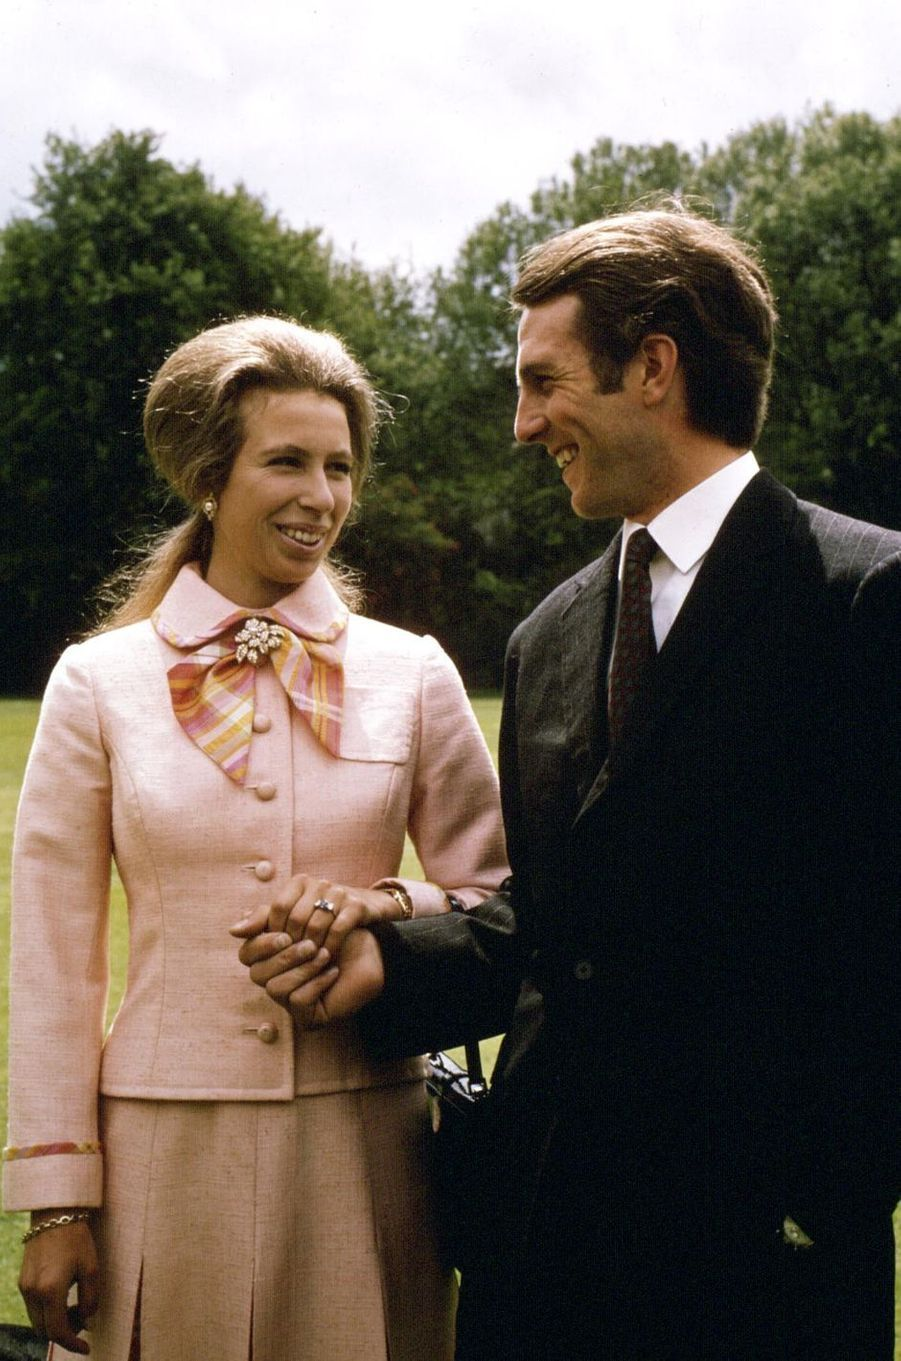 Saphir et diamants pour la princesse Anne, fiancée à Mark Phillips en 1973